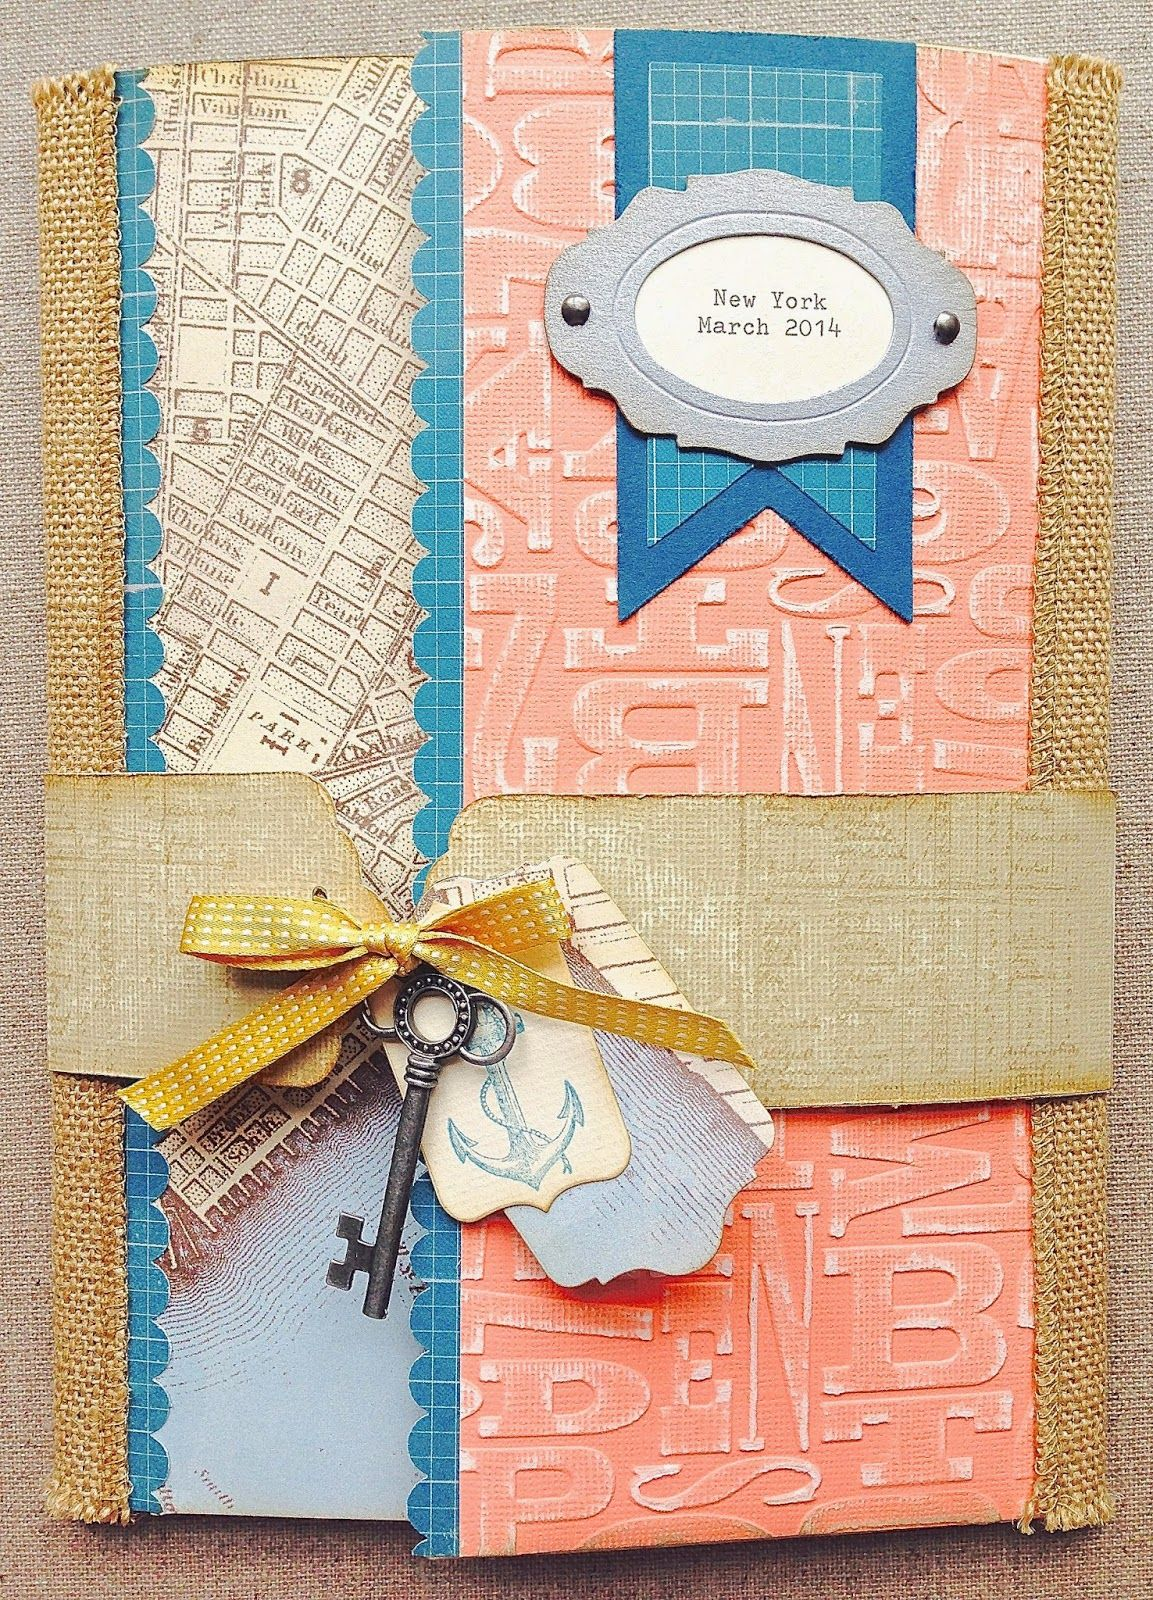 STAMPIN' UP DEMO UK - Jane Goldman  - Petite Fleur Paperie. Soho Subway Travel Log !